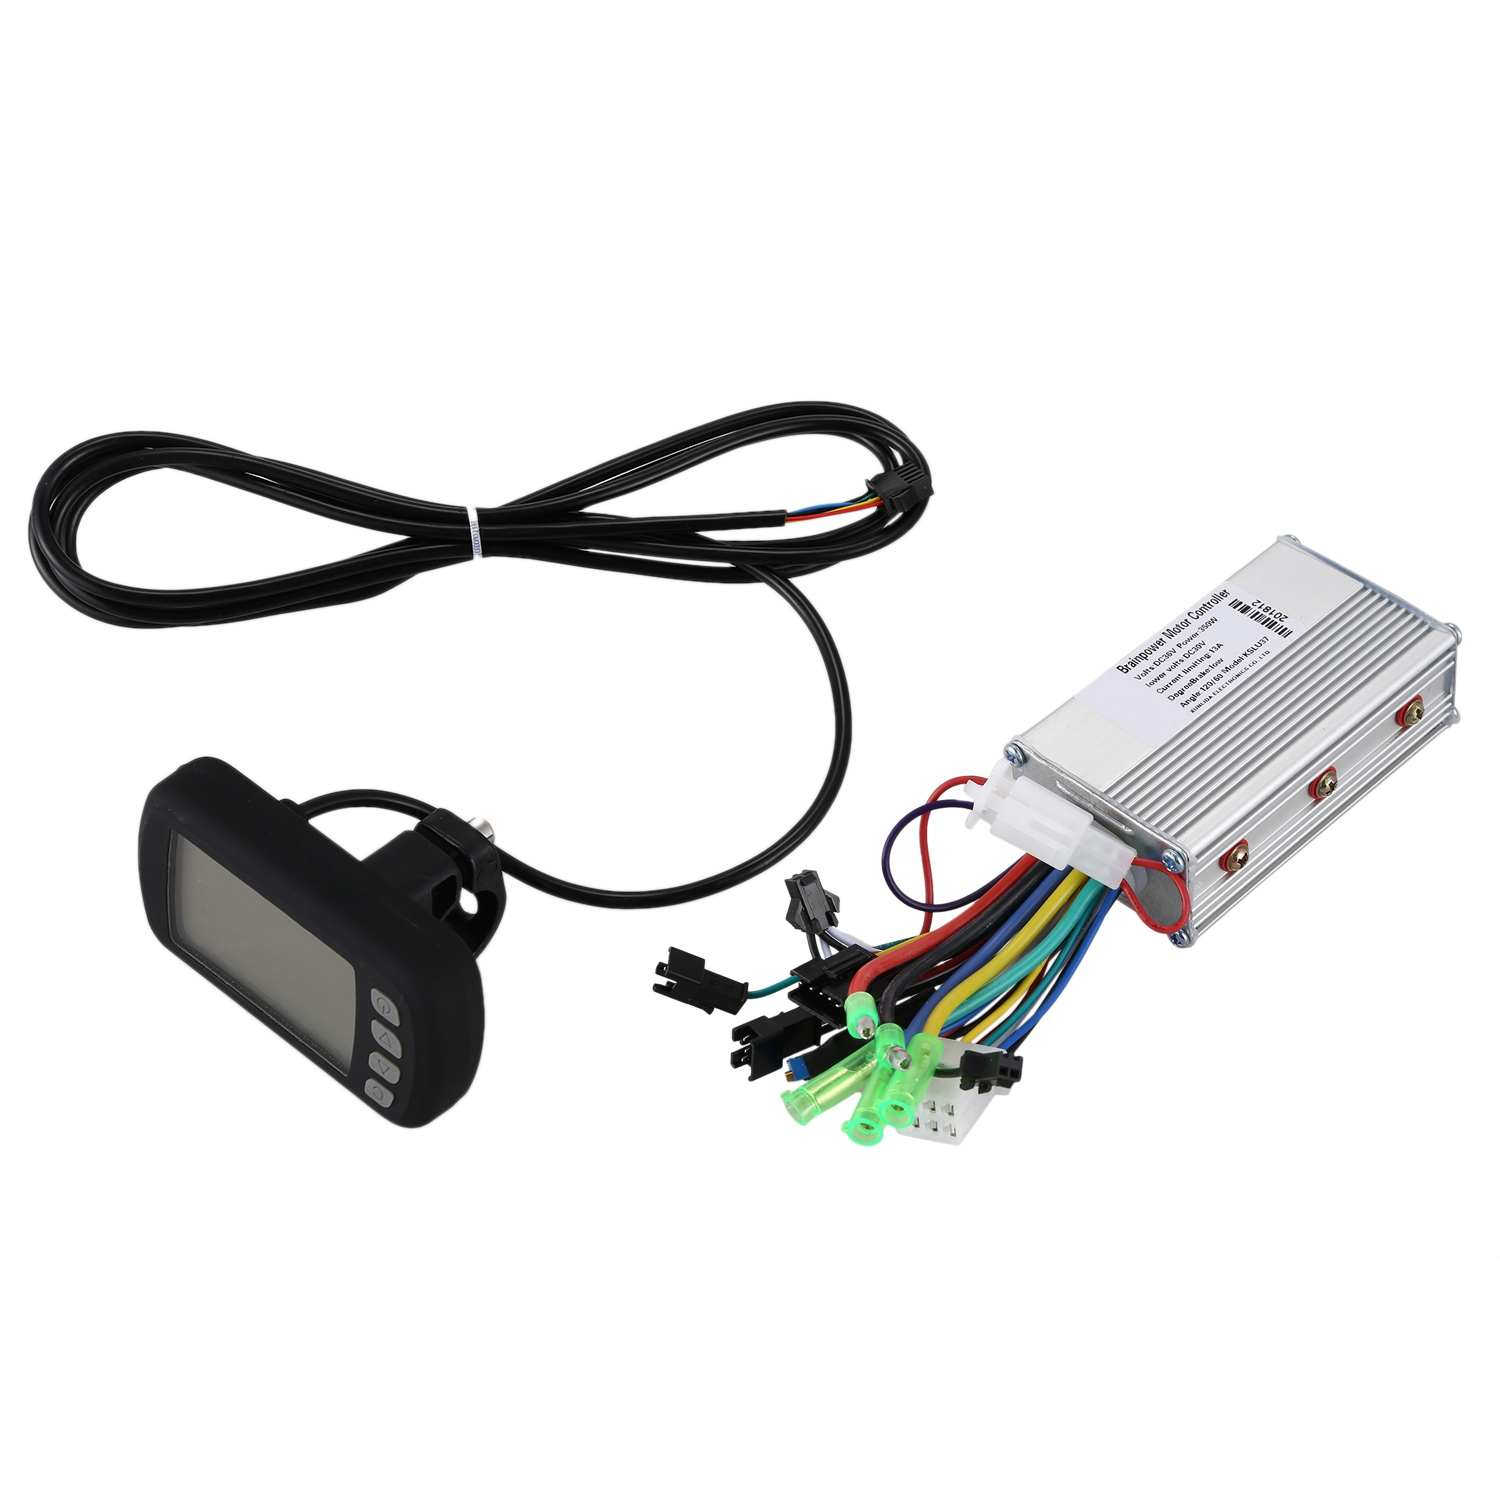 36V 350W Brushless Electric Bicycle Controller With Lcd Panel Meter Digital Gauge Set For E Bike